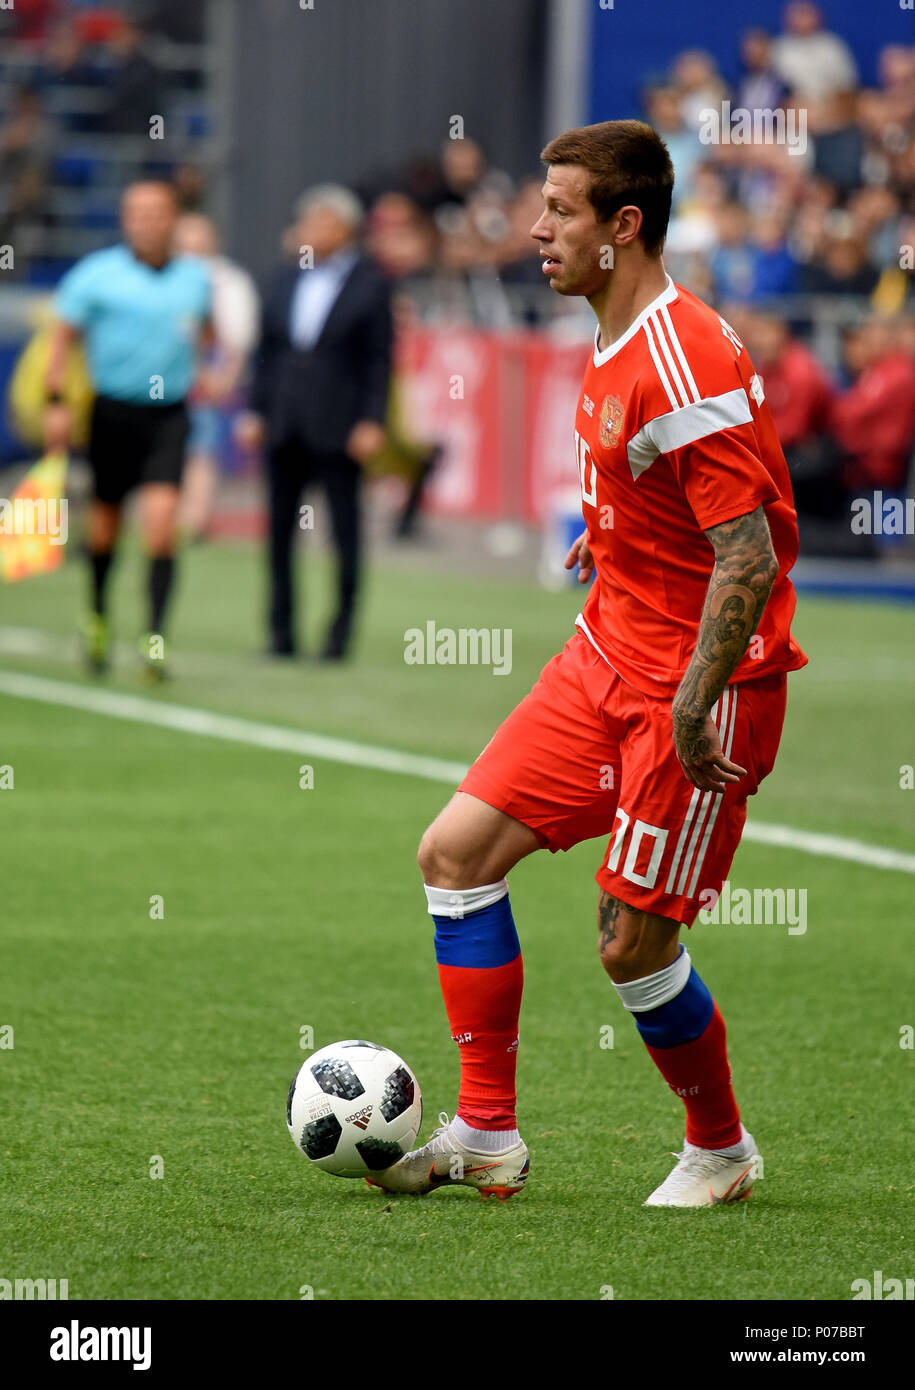 c801da40c155 Moscow, Russia - June 5, 2018. Russian striker Fedor Smolov during  international friendly